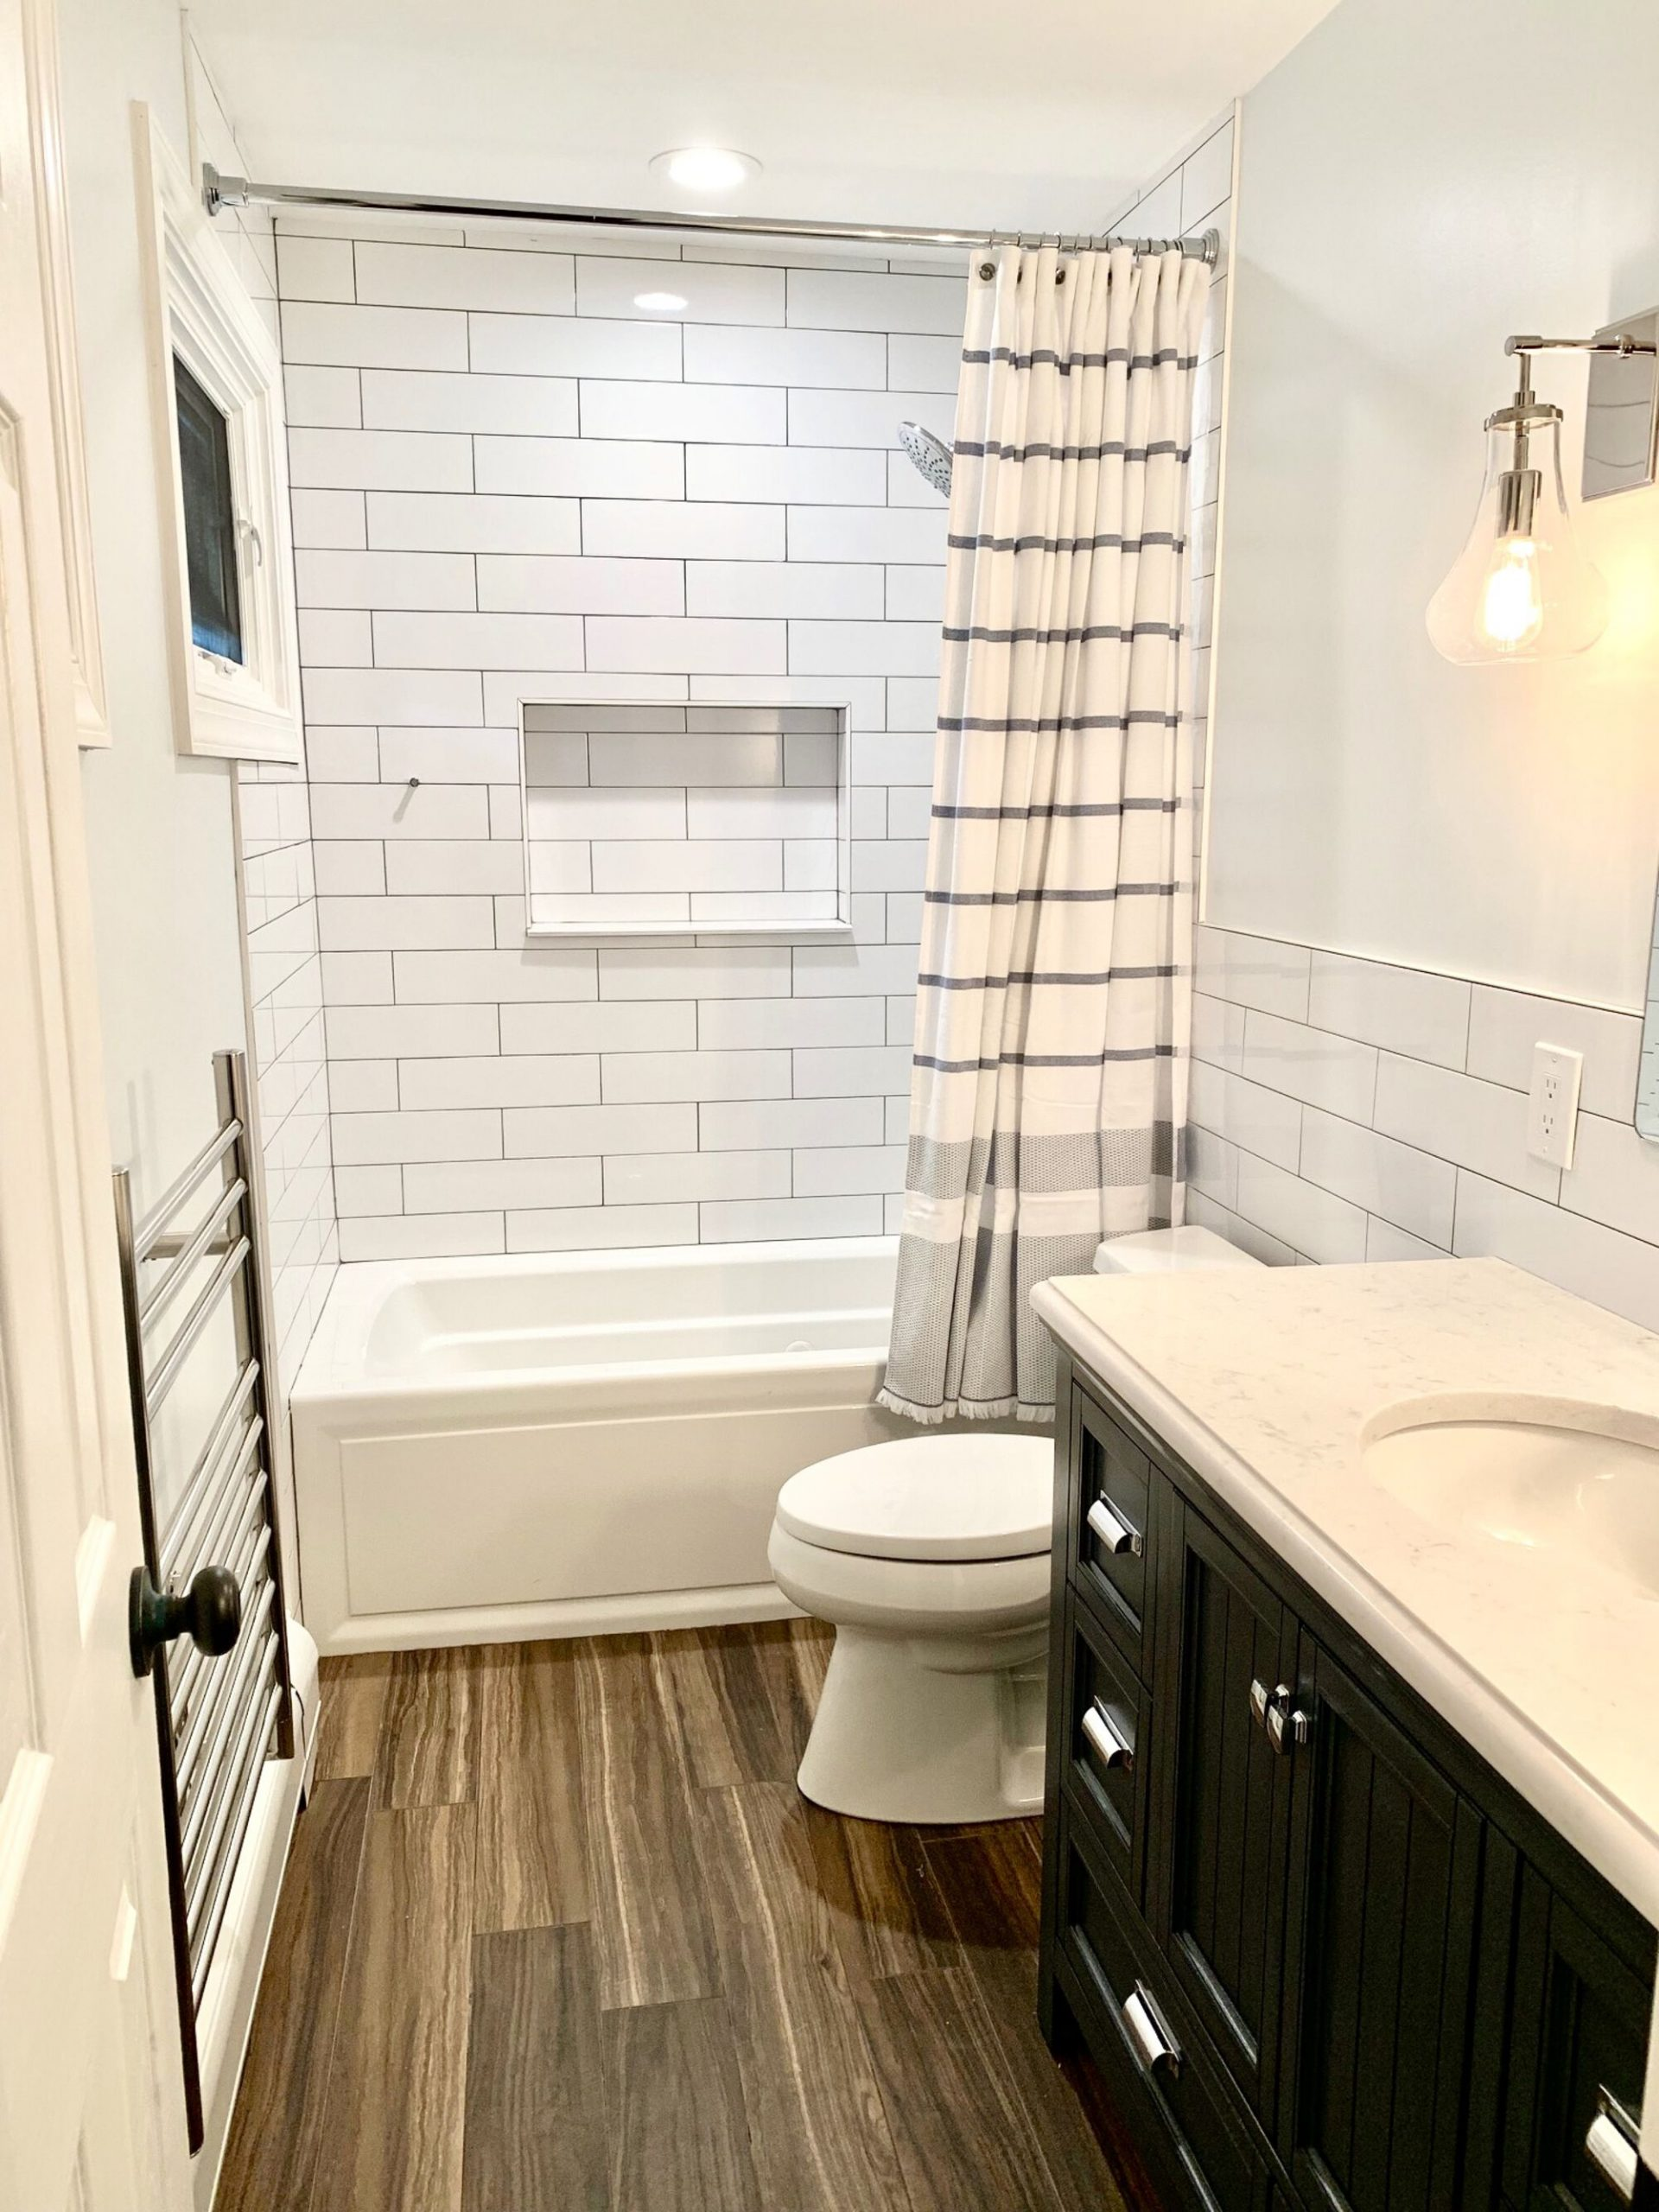 Wood Plank ceramic Tile, Oversized Subway Tile, Product Inset, Towel Warmer in South Amboy, Middlesex County NJ